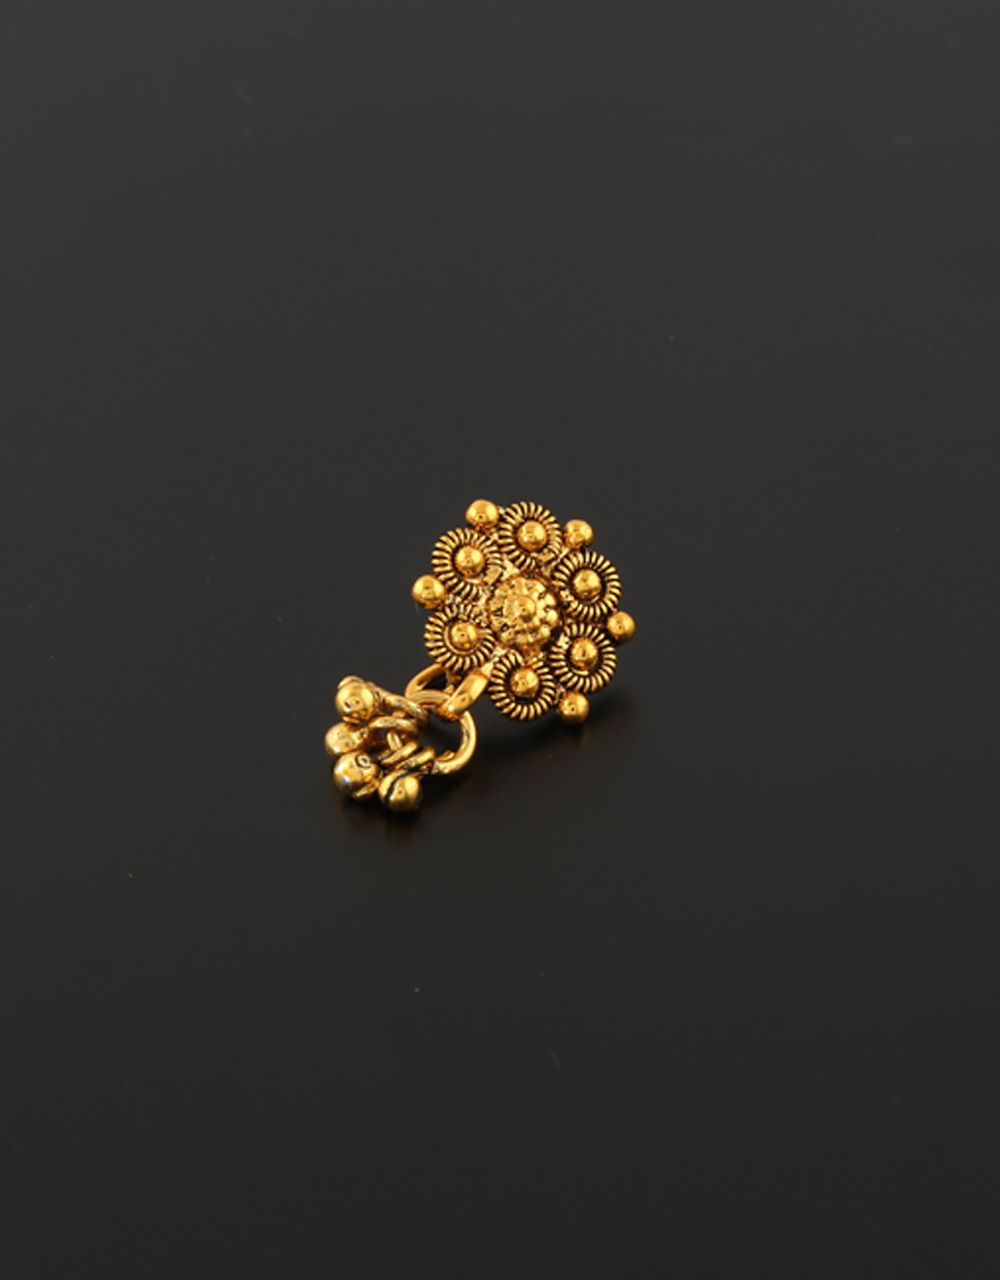 c4b20ad607 Get exclusive range of nose rings online at best price. Unique nose pin  designs and latest Indian bridal nose rings at India's best jewellery  shopping store ...